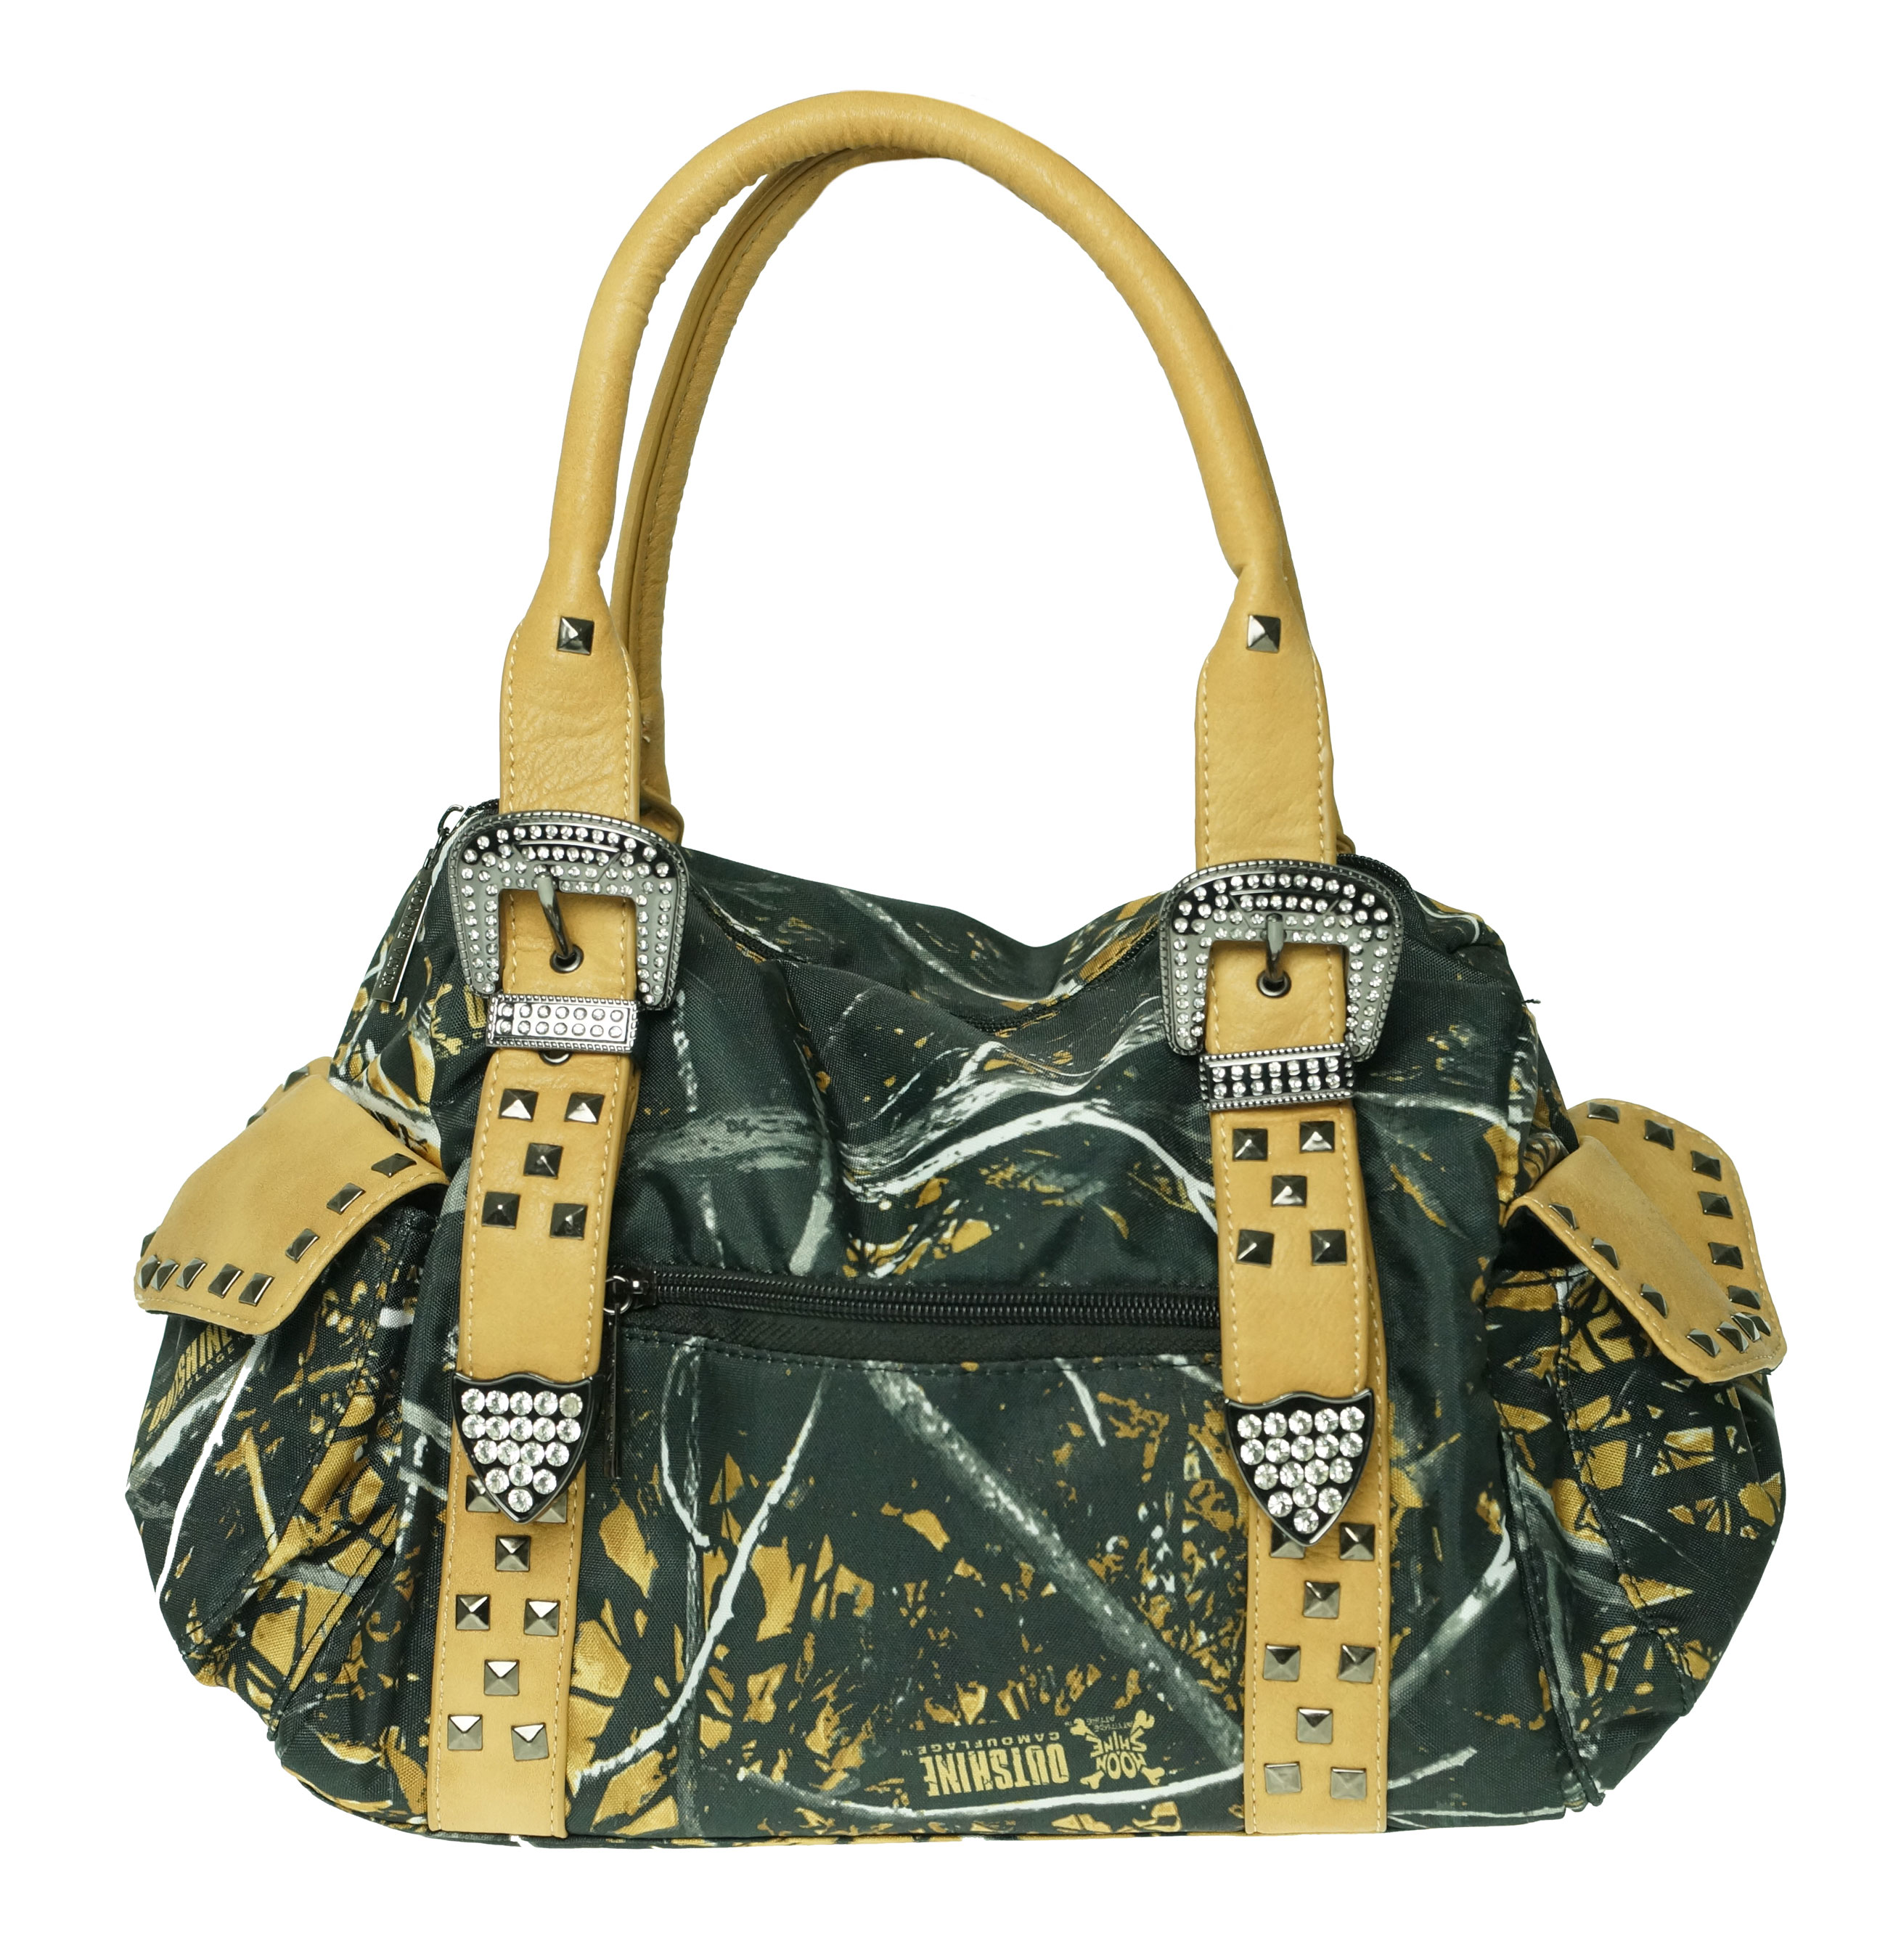 Monte Vista Concealed Handgun Barrel Outshine Camouflage Purse